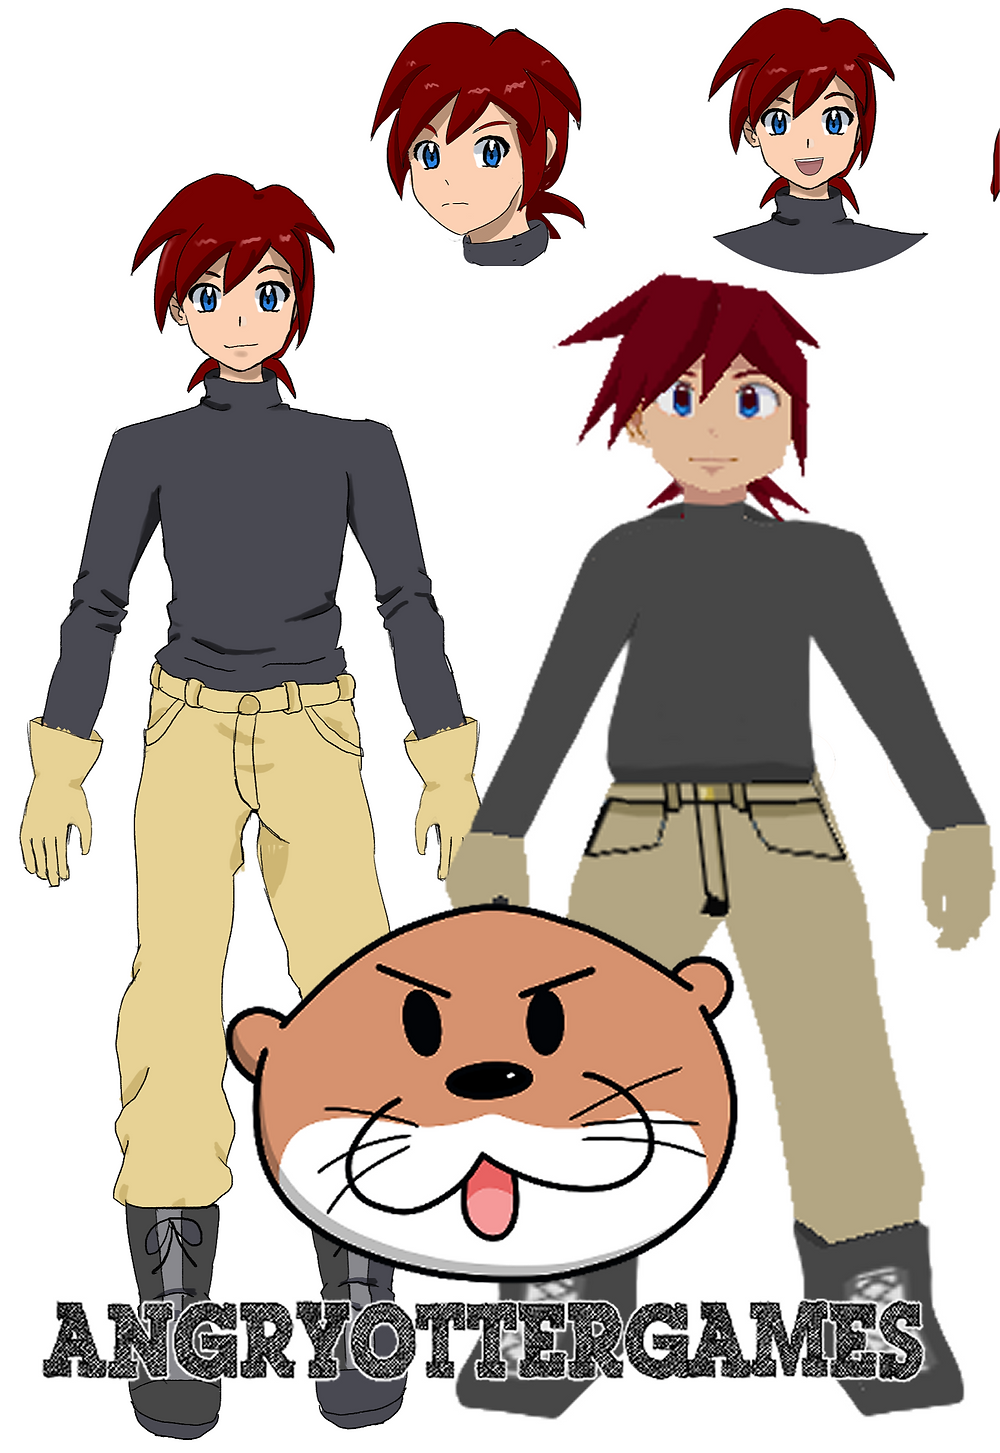 A redesign of the main character, Abner. A photo model next to a drawing of him.